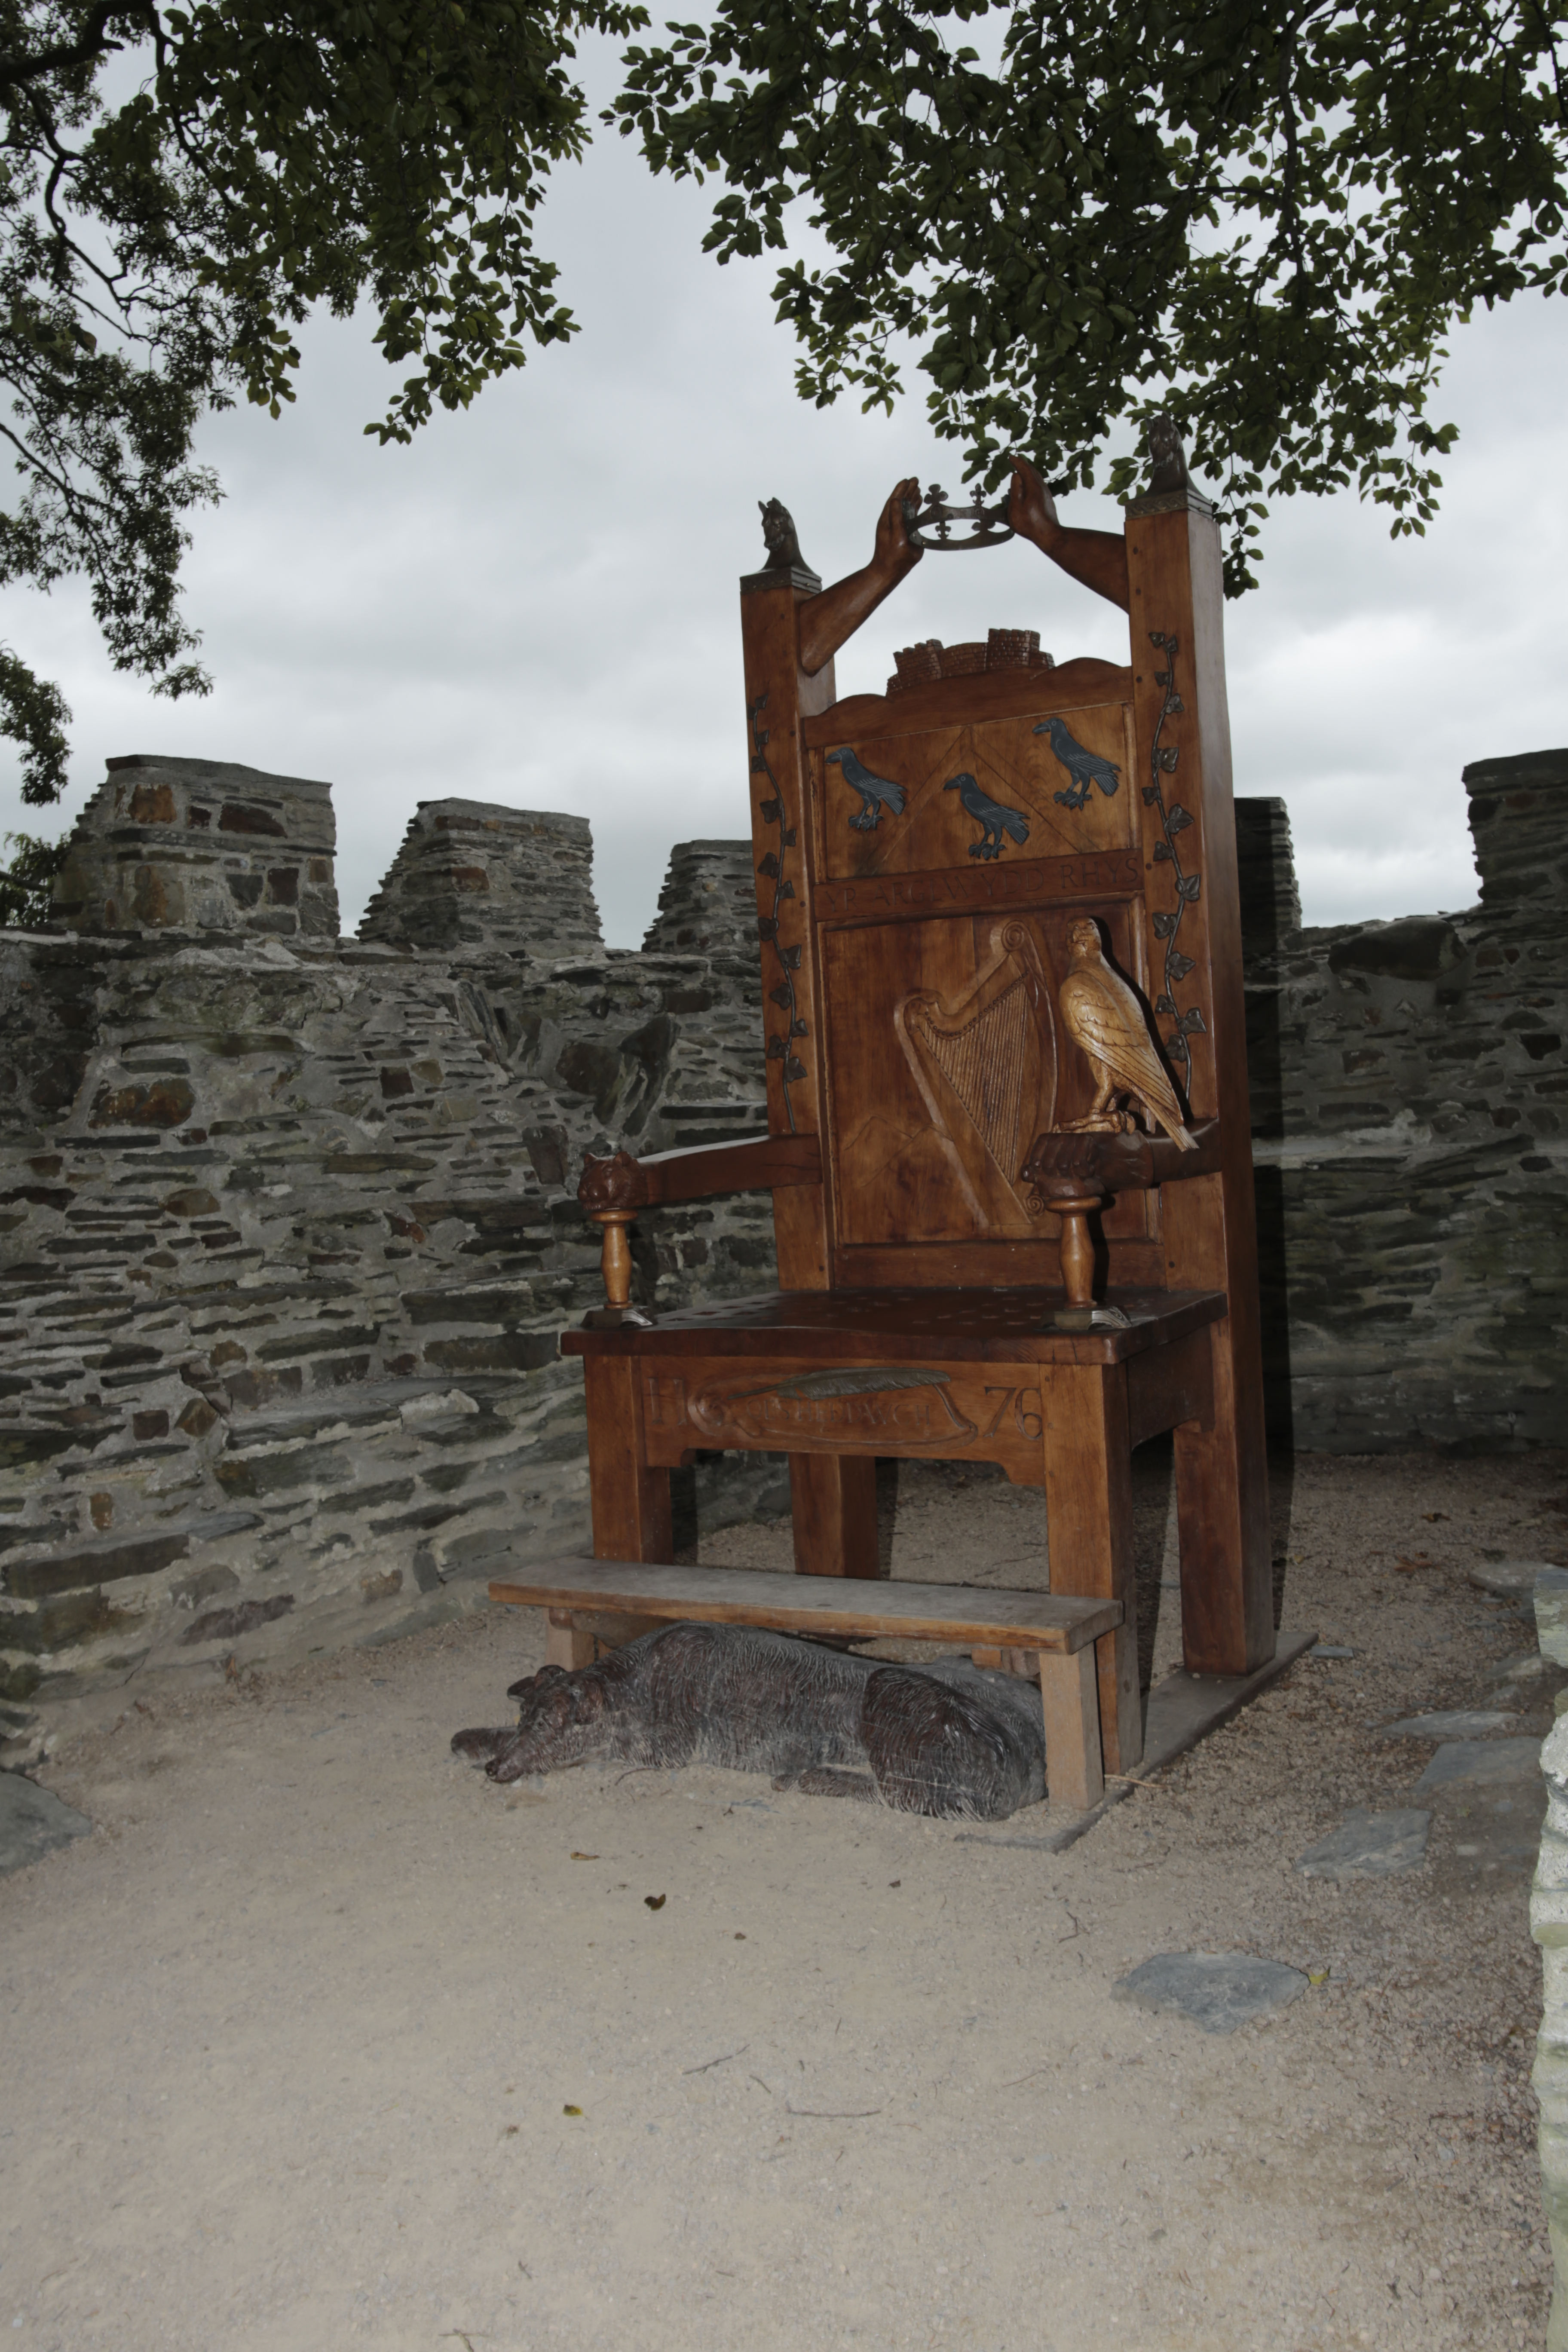 Eisteddfod Chair at Cardigan Castle.